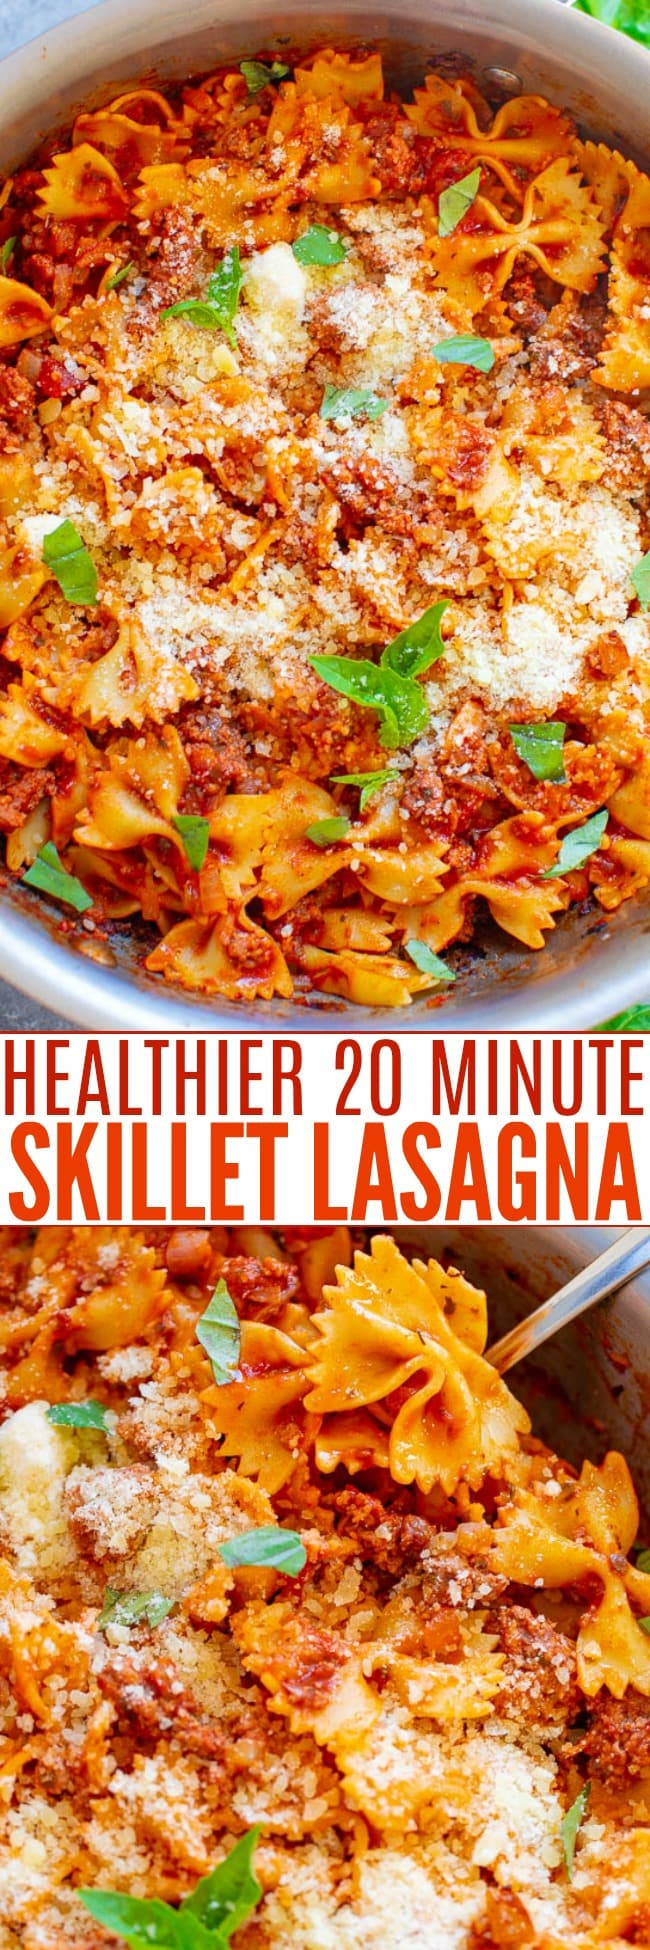 Healthier 20-Minute Skillet Lasagna – A fast, EASY, SKINNIER way to enjoy lasagna – in skillet form!! Comfort food without the guilt! Warm pasta and beef topped with tomato sauce and Parmesan is IRRESISTIBLE!!